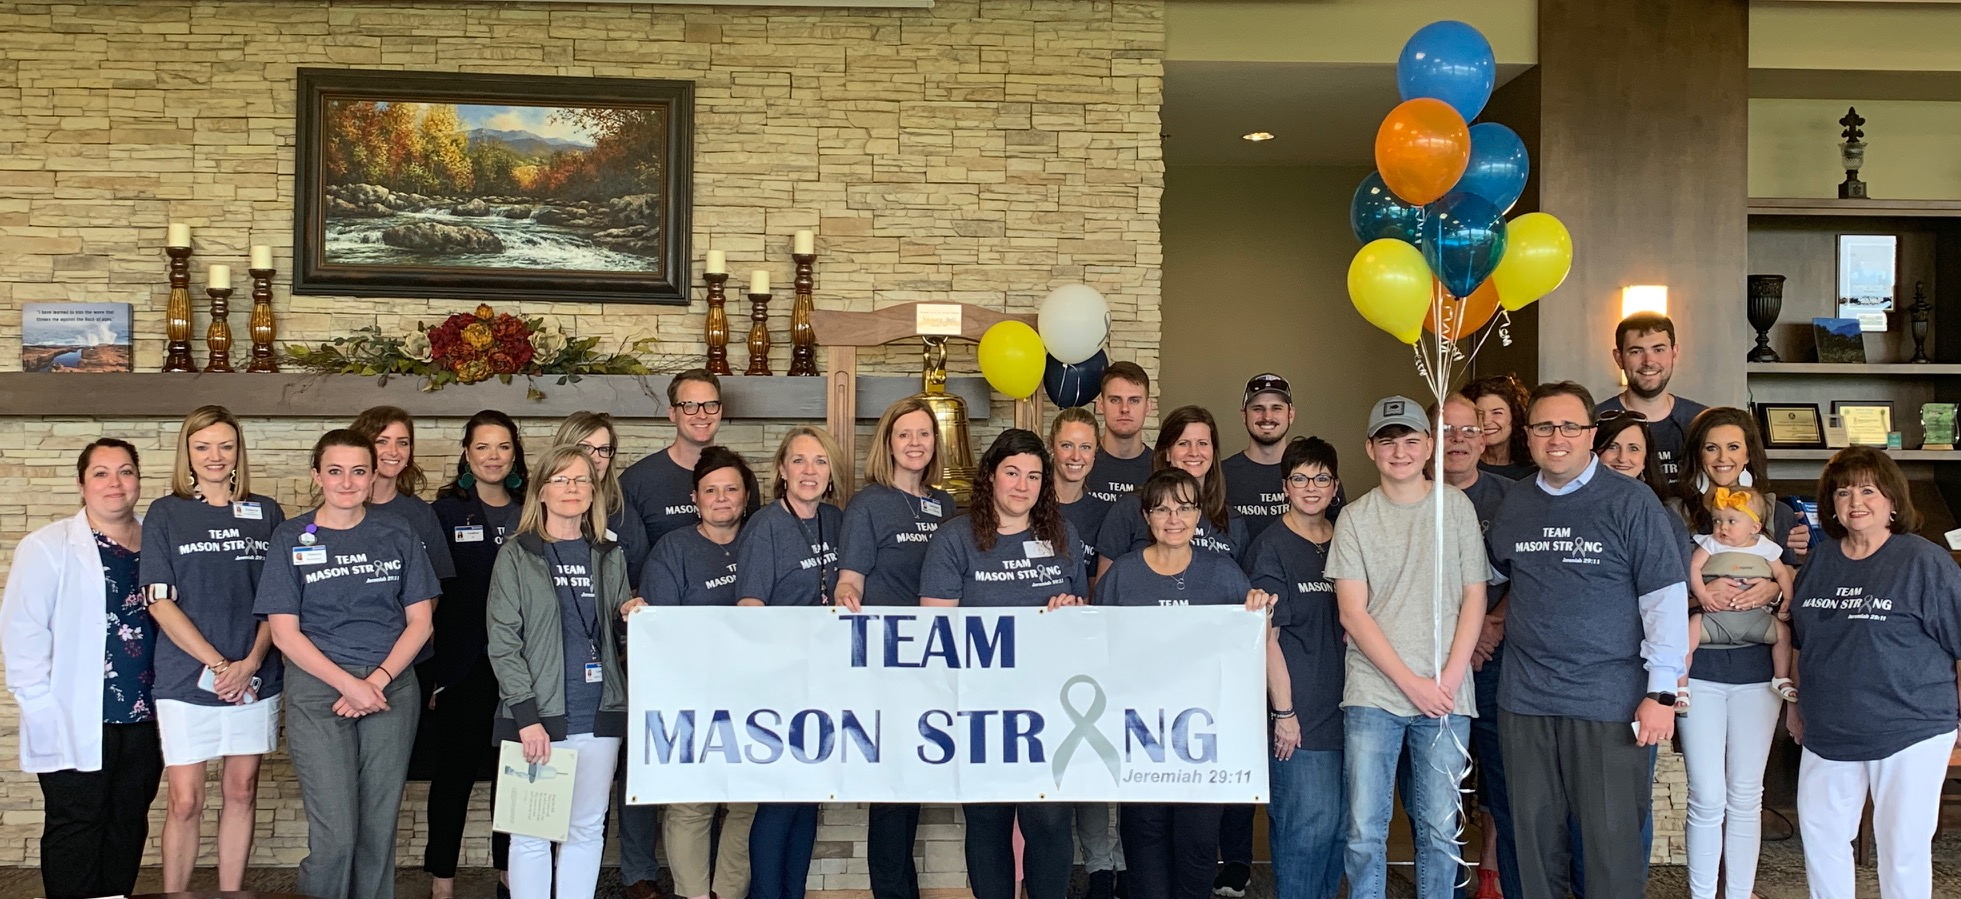 Mason Strong graduates after completing proton therapy treatment at Provision CARES